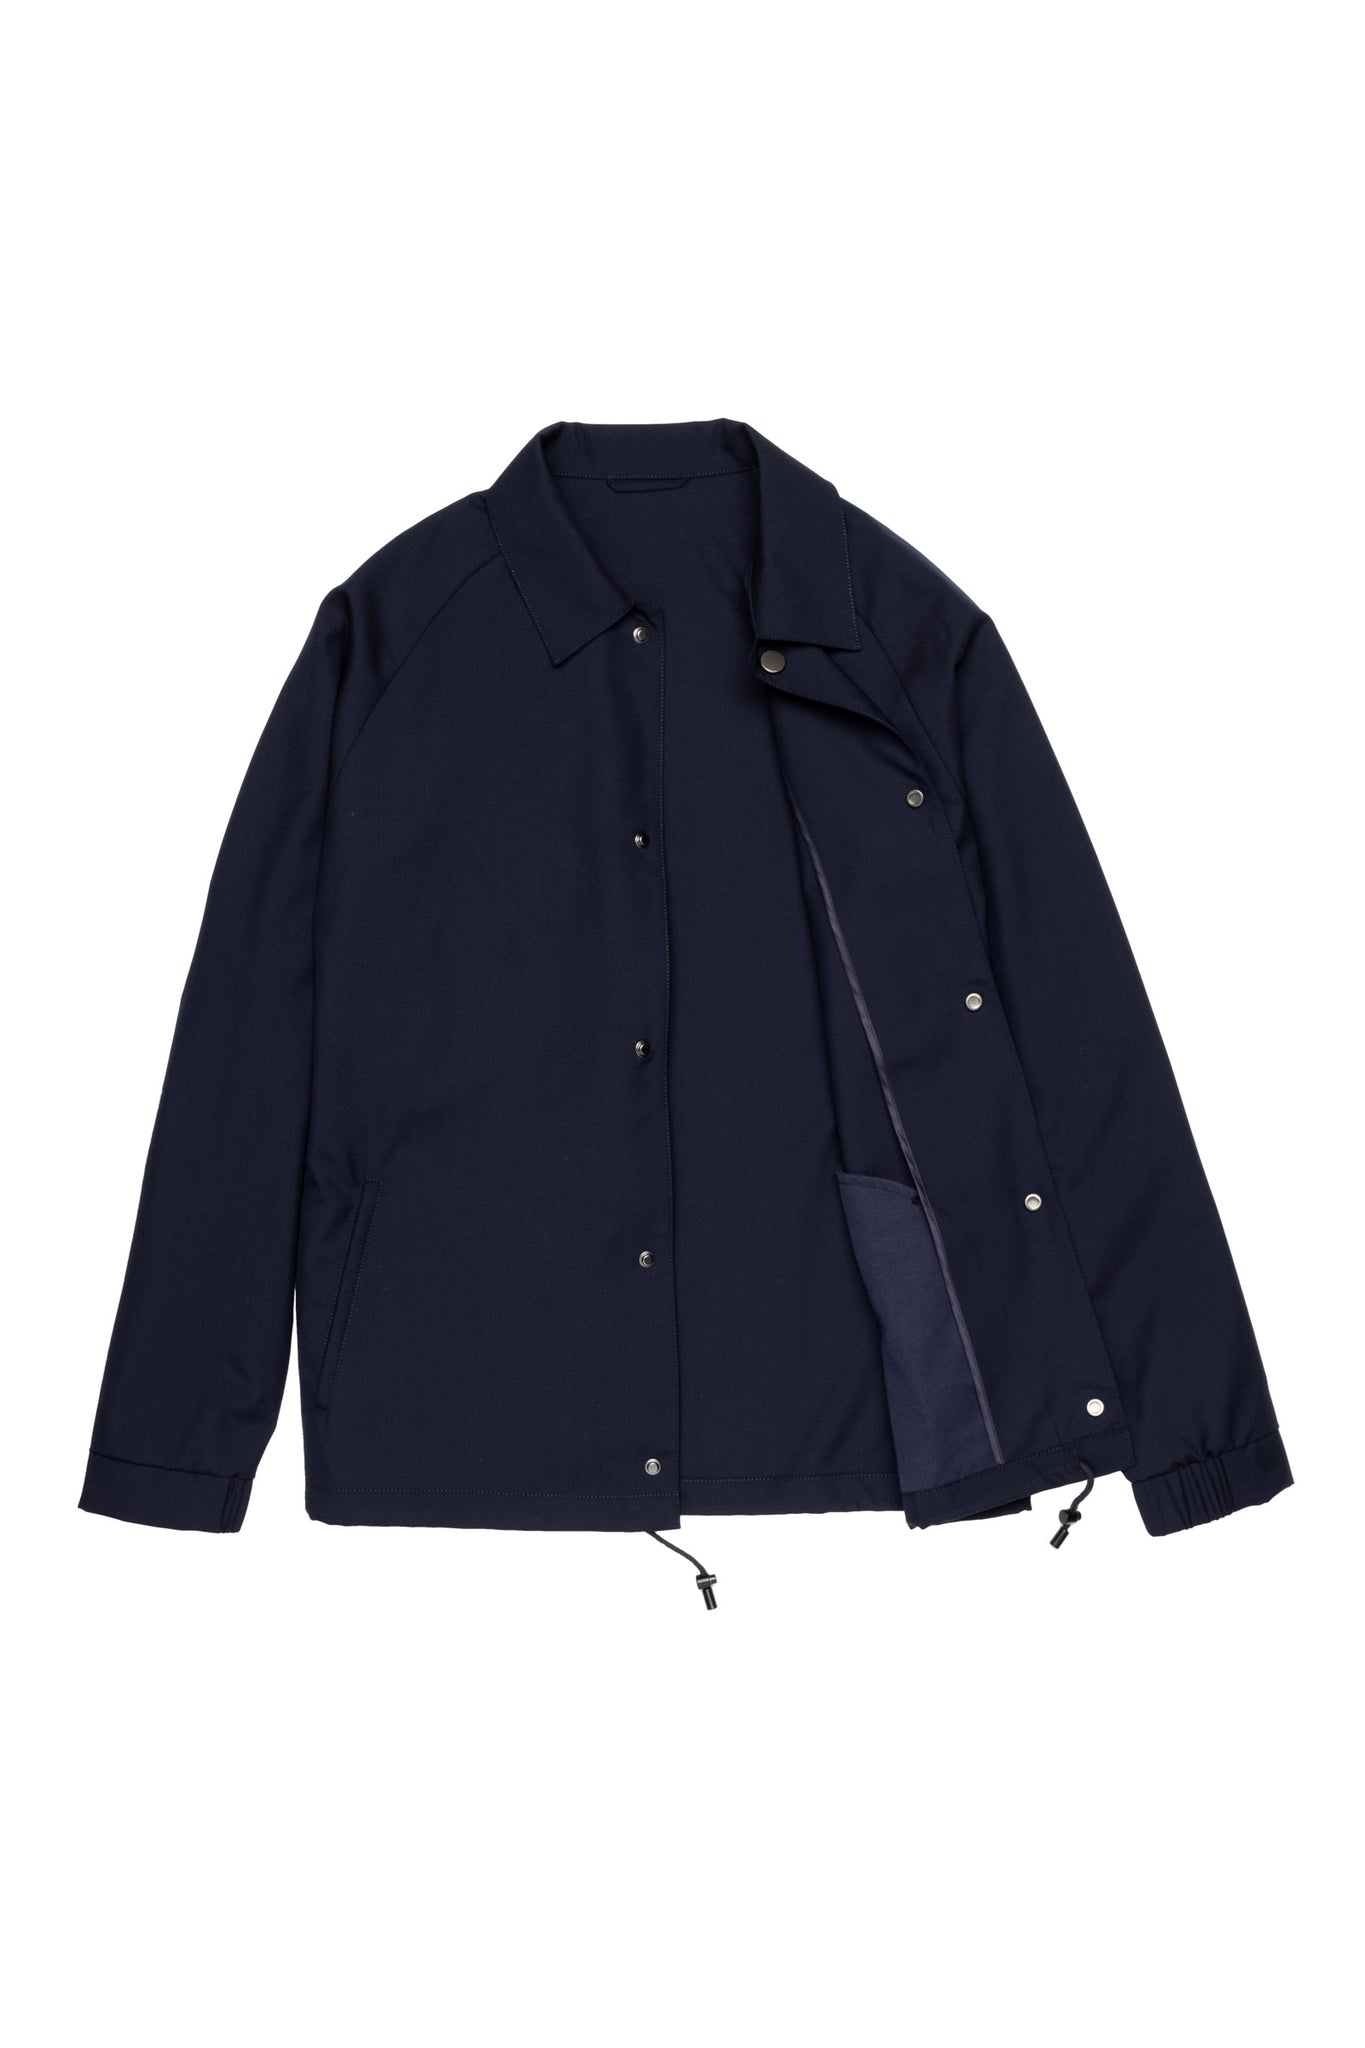 Navy Lightweight Sailing Blouson